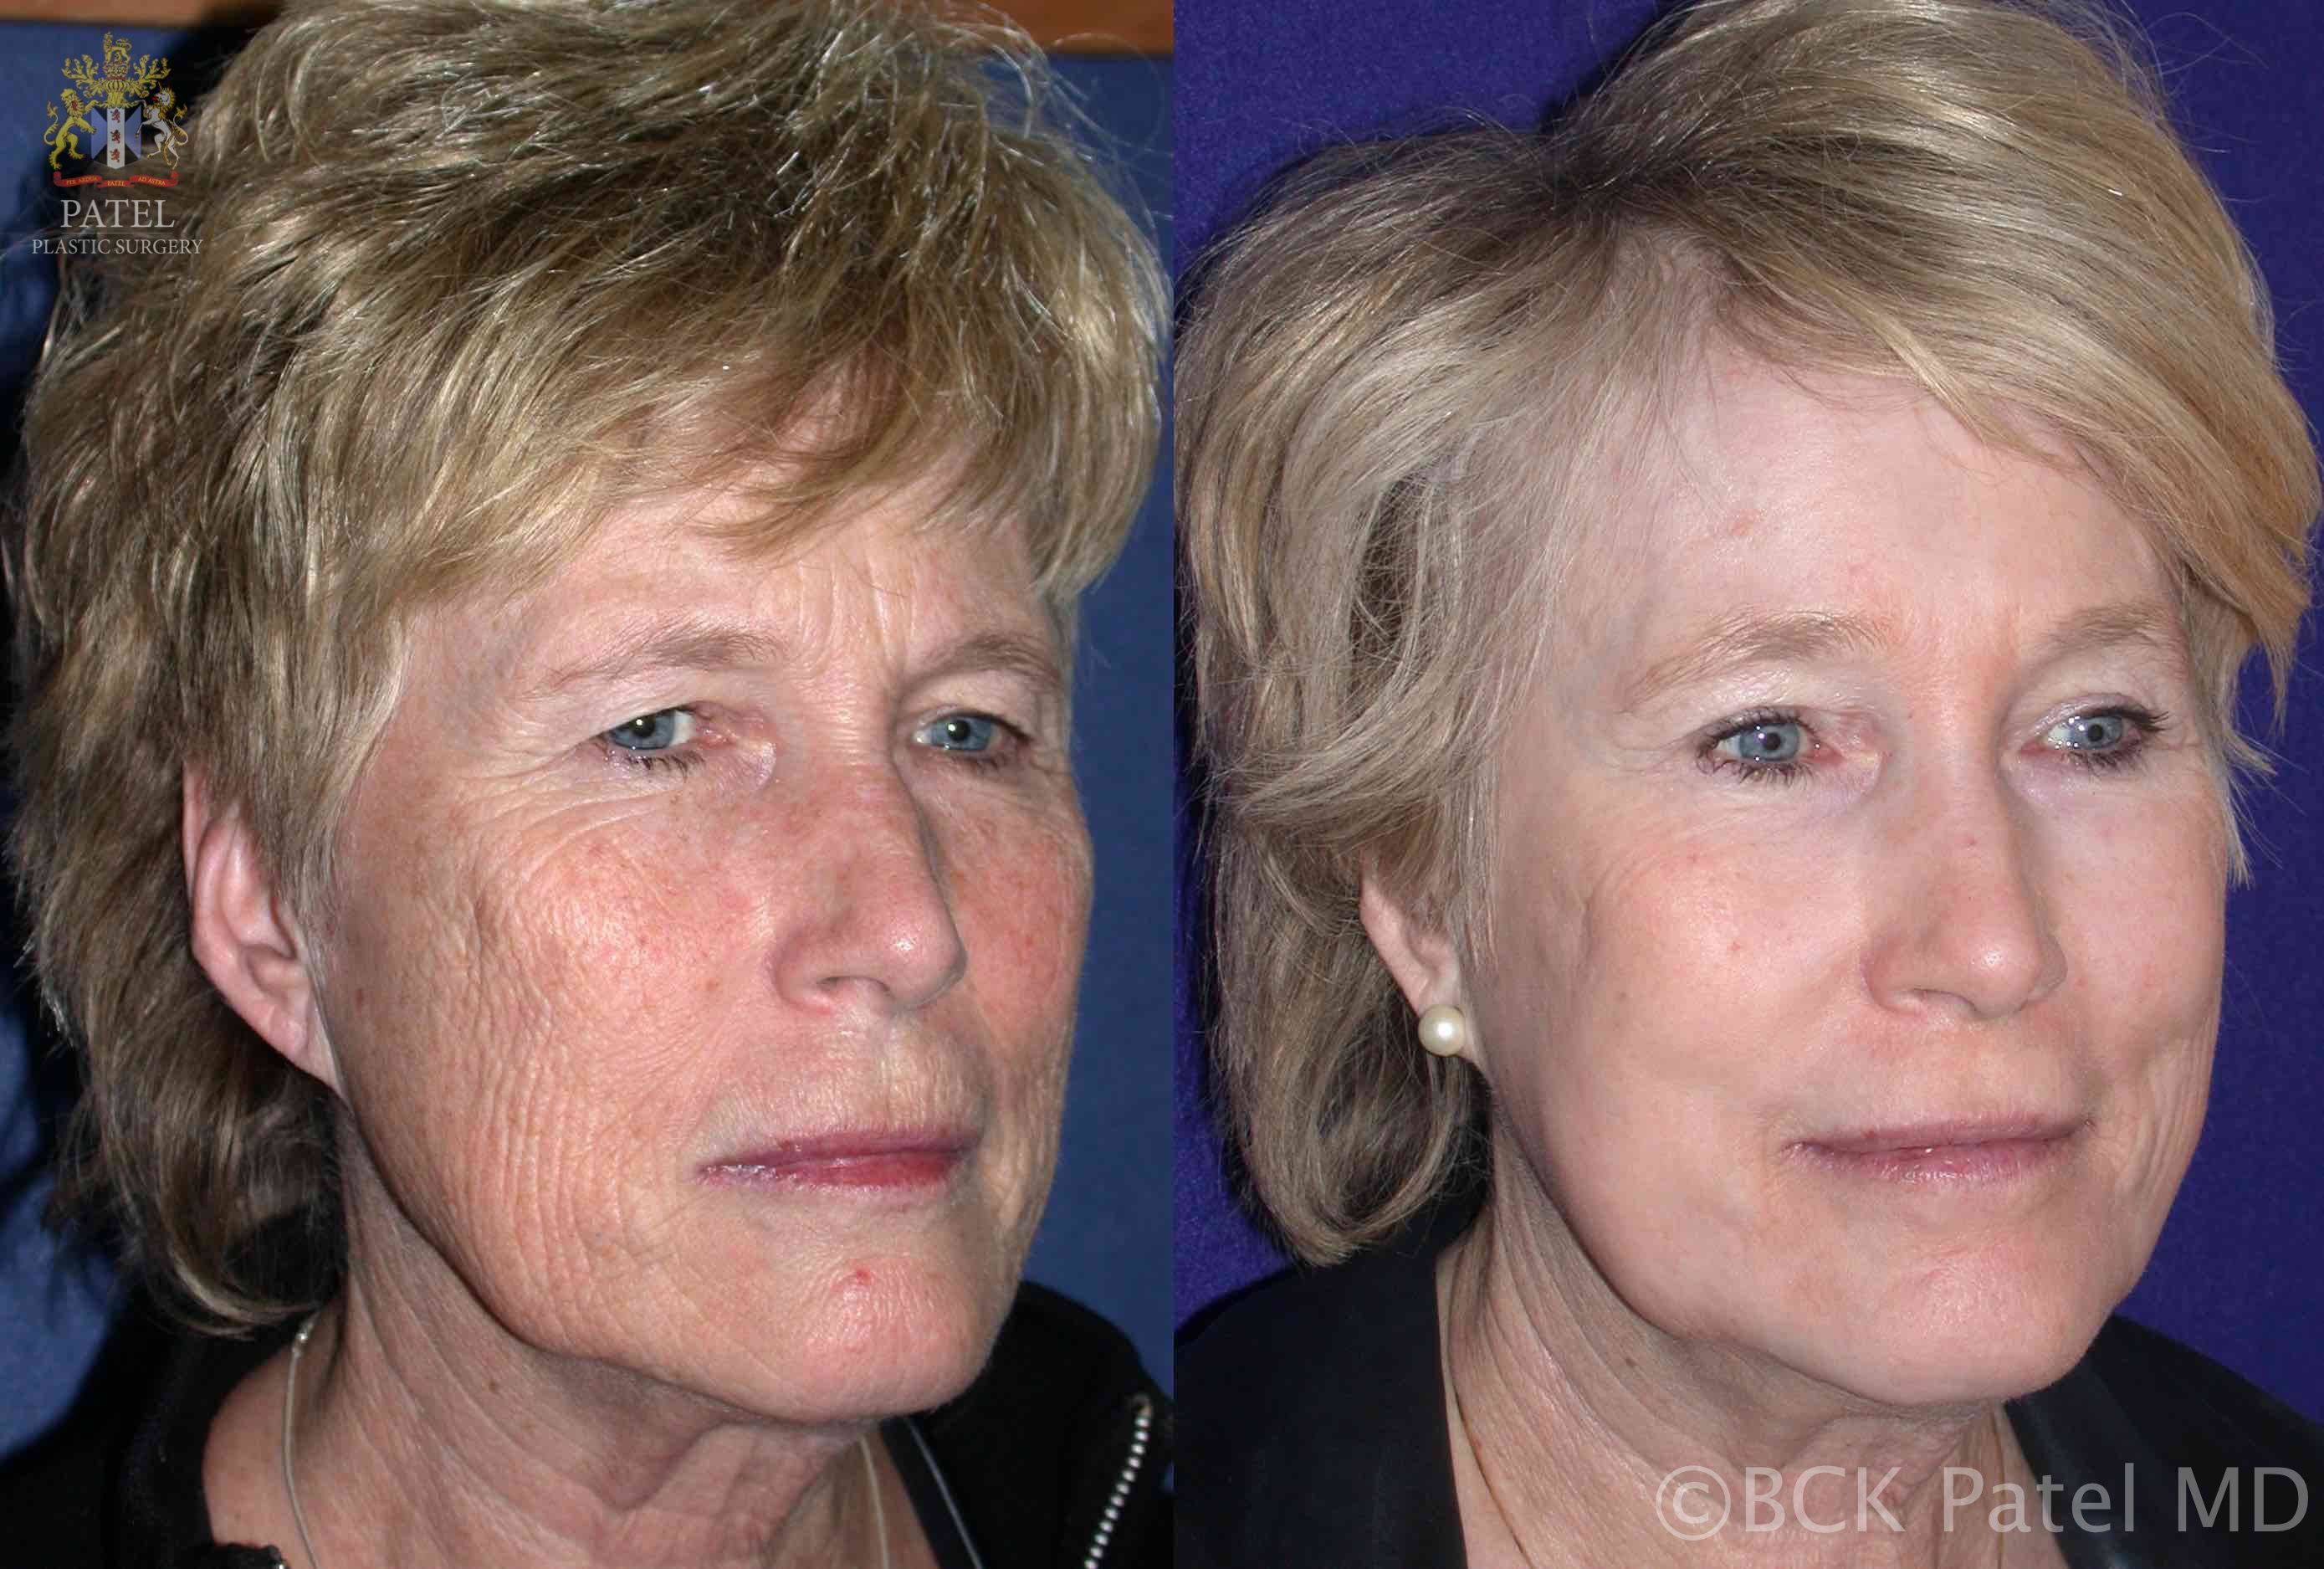 englishsurgeon.com. Long-term followup of the full face after fractionated CO2 laser treatment by Dr. BCK Patel MD, FRCS, Salt Lake City, London, St George